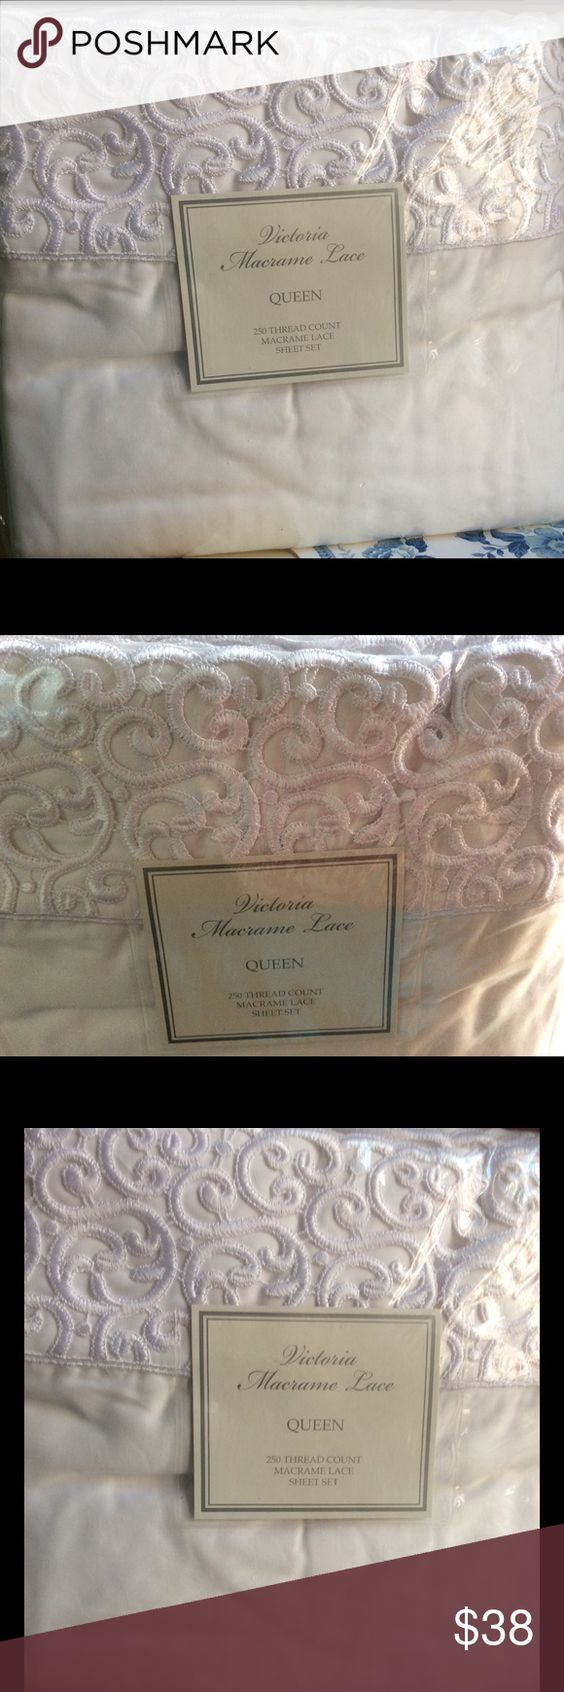 NEW VICTORIAN MACRAME IVORY SHEET SET QUEEN SIZE Lovely, new in the package Ivory Queen sized sheet set From Victorian Macrame There is beautiful Lace work on the top sheet and on the pillowcases. This is a high quality sheet set the material is 50% cotton, 50% Poly. It washes and drys beautifully , doesn't wrinkle. I have a blue set. Heavy material is over the 5 pound shipping limit, So I have to pay an additional $3.99 for the shipping label. So I have to set the price at about $34.There…